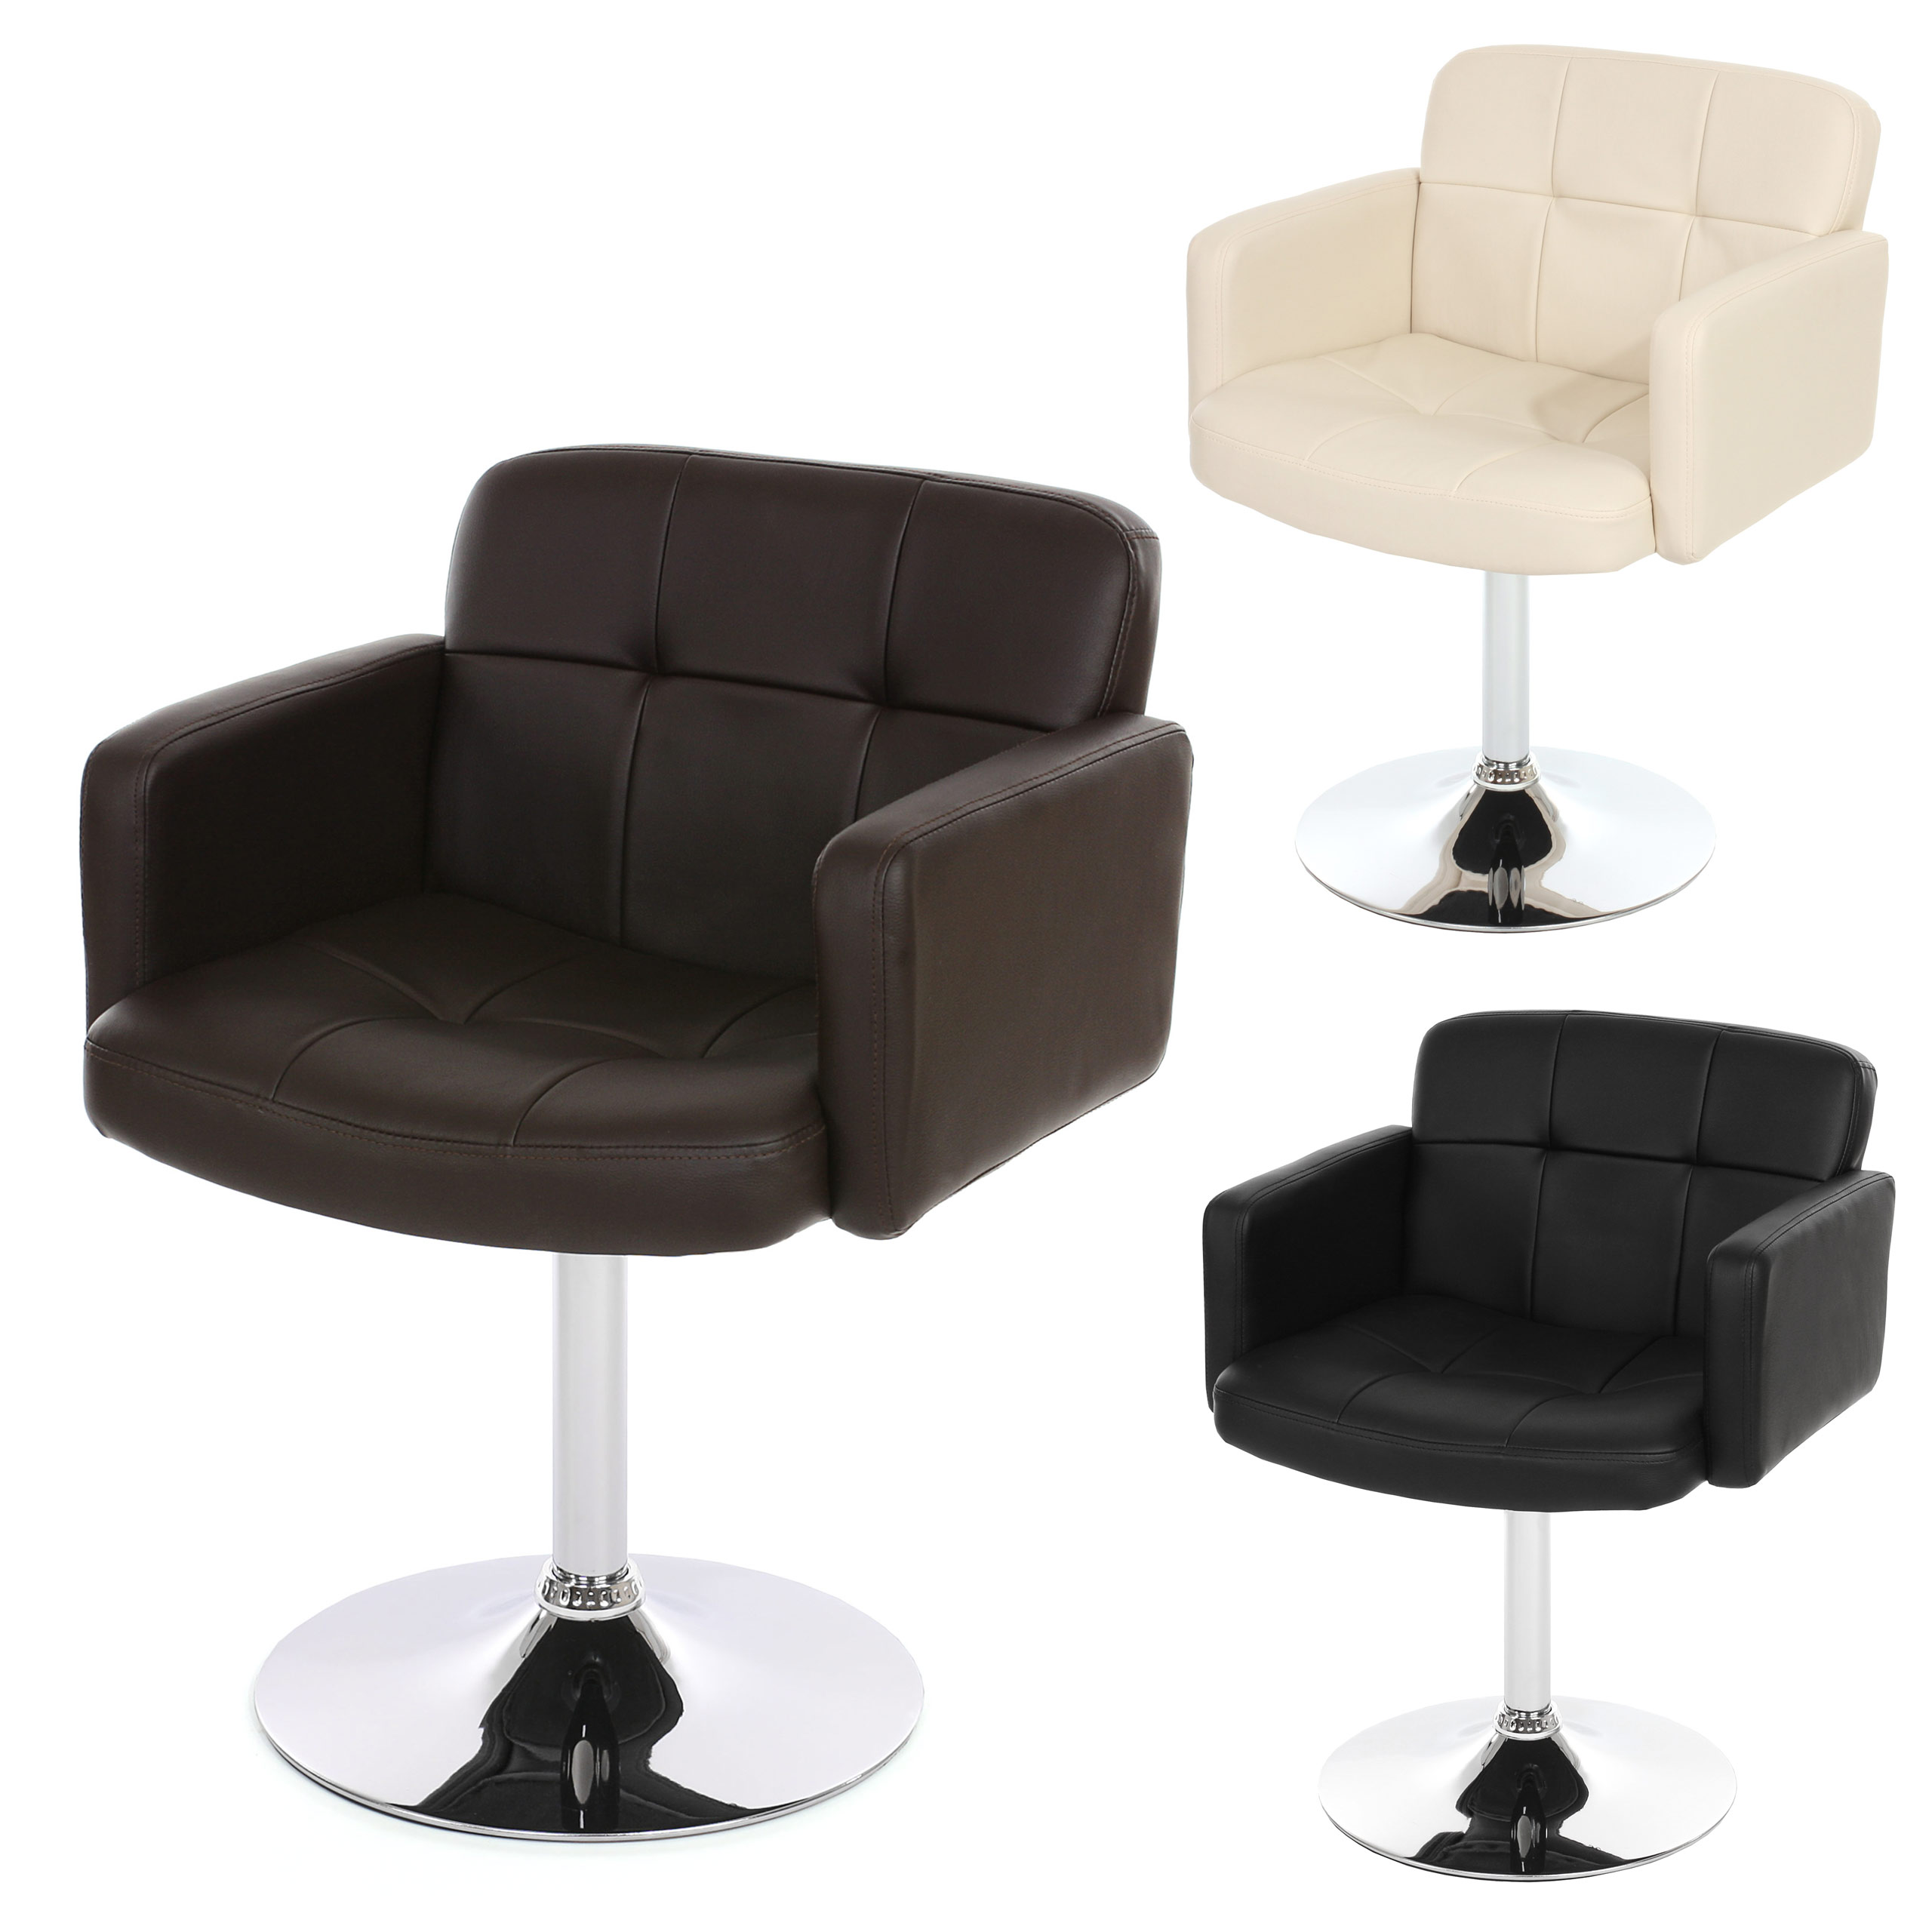 Orlando Lounge Sessel Relaxsessel Loungesessel Clubsessel Drehstuhl Sessel